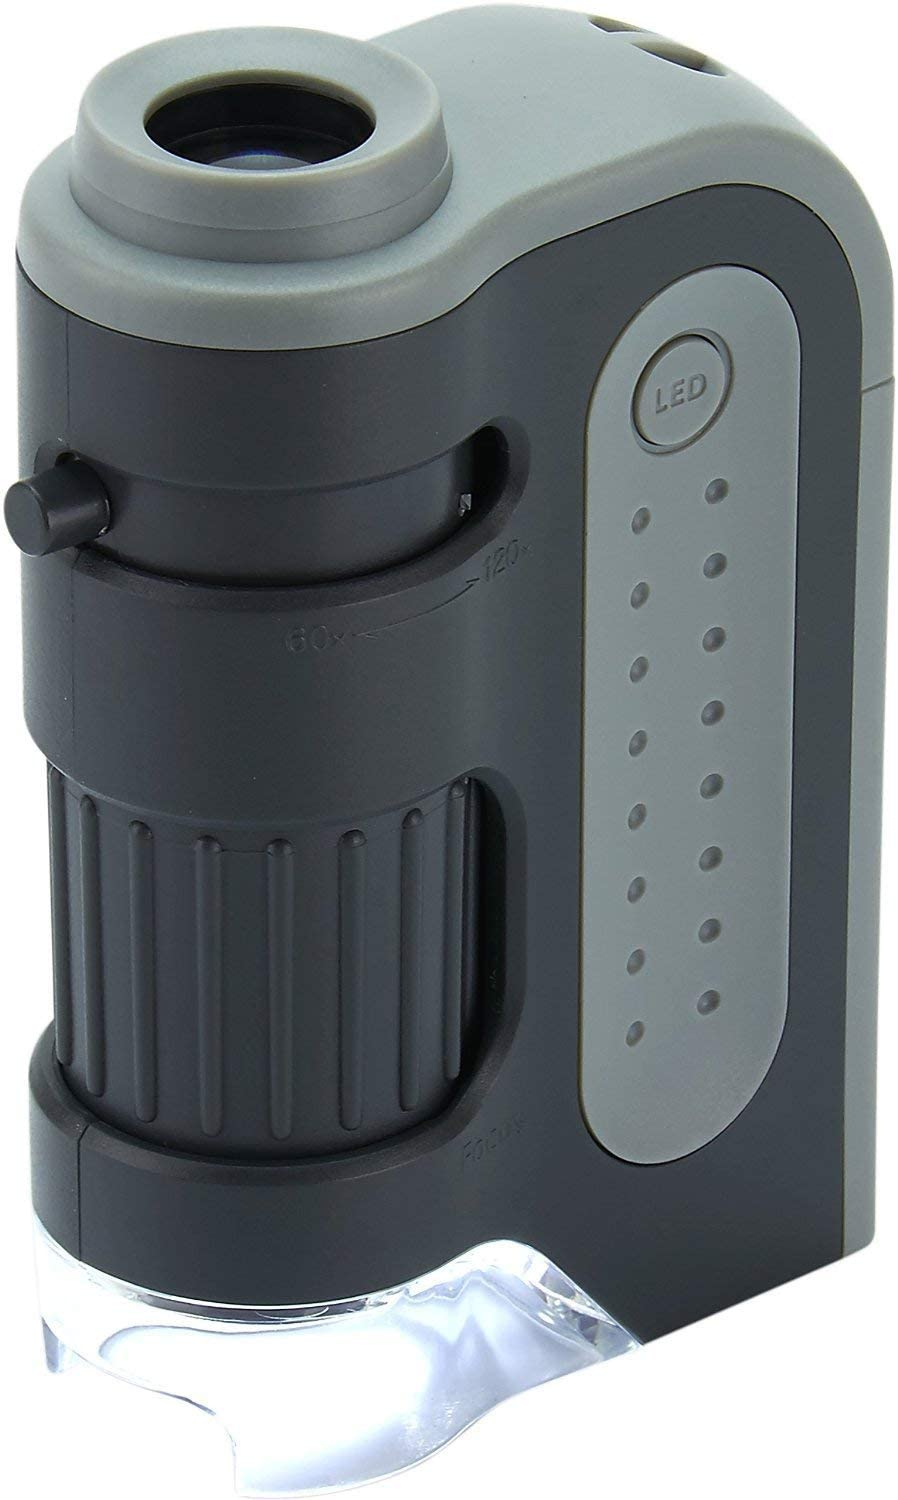 Carson MicroBrite Plus LED Lighted Pocket Microscope at Kapruka Online for specialGifts